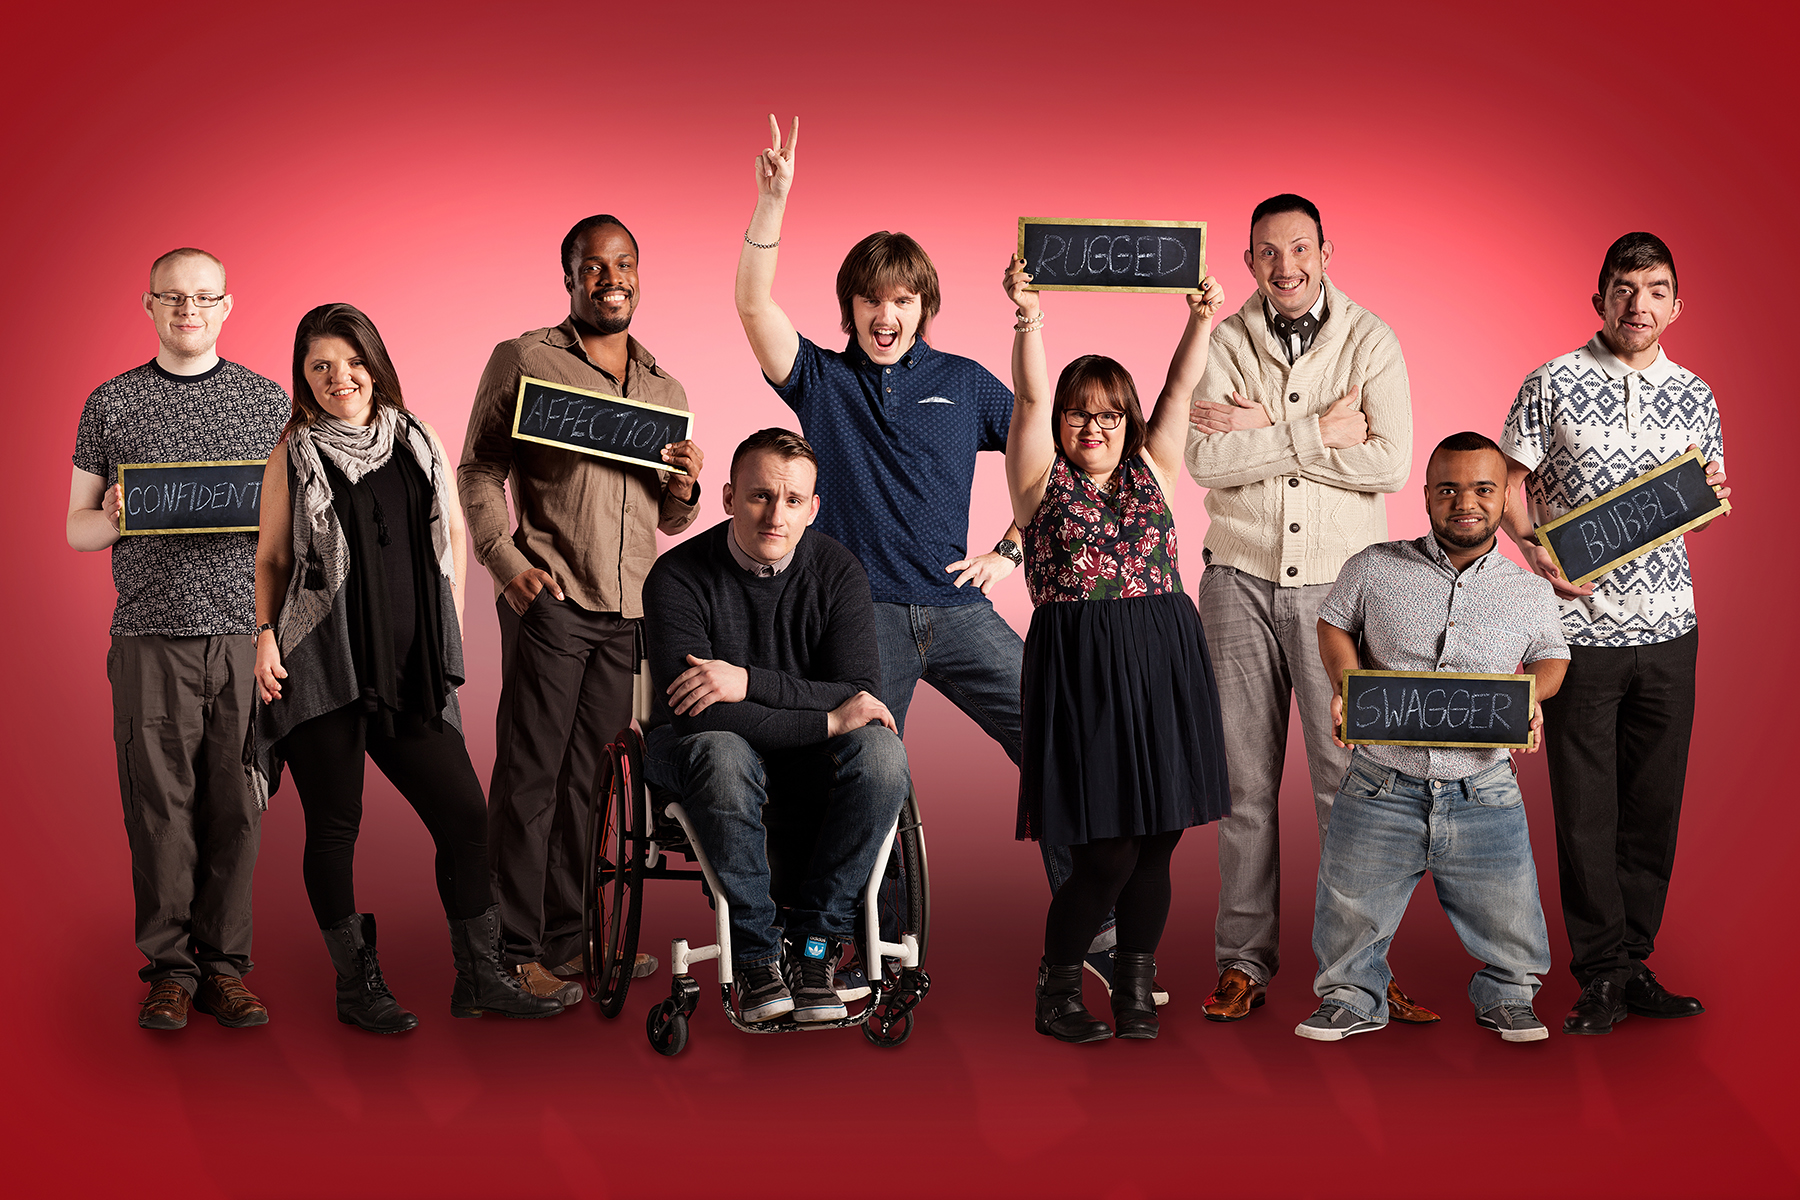 Watch| The Undateables is Back on Channel 4 – SceneTV